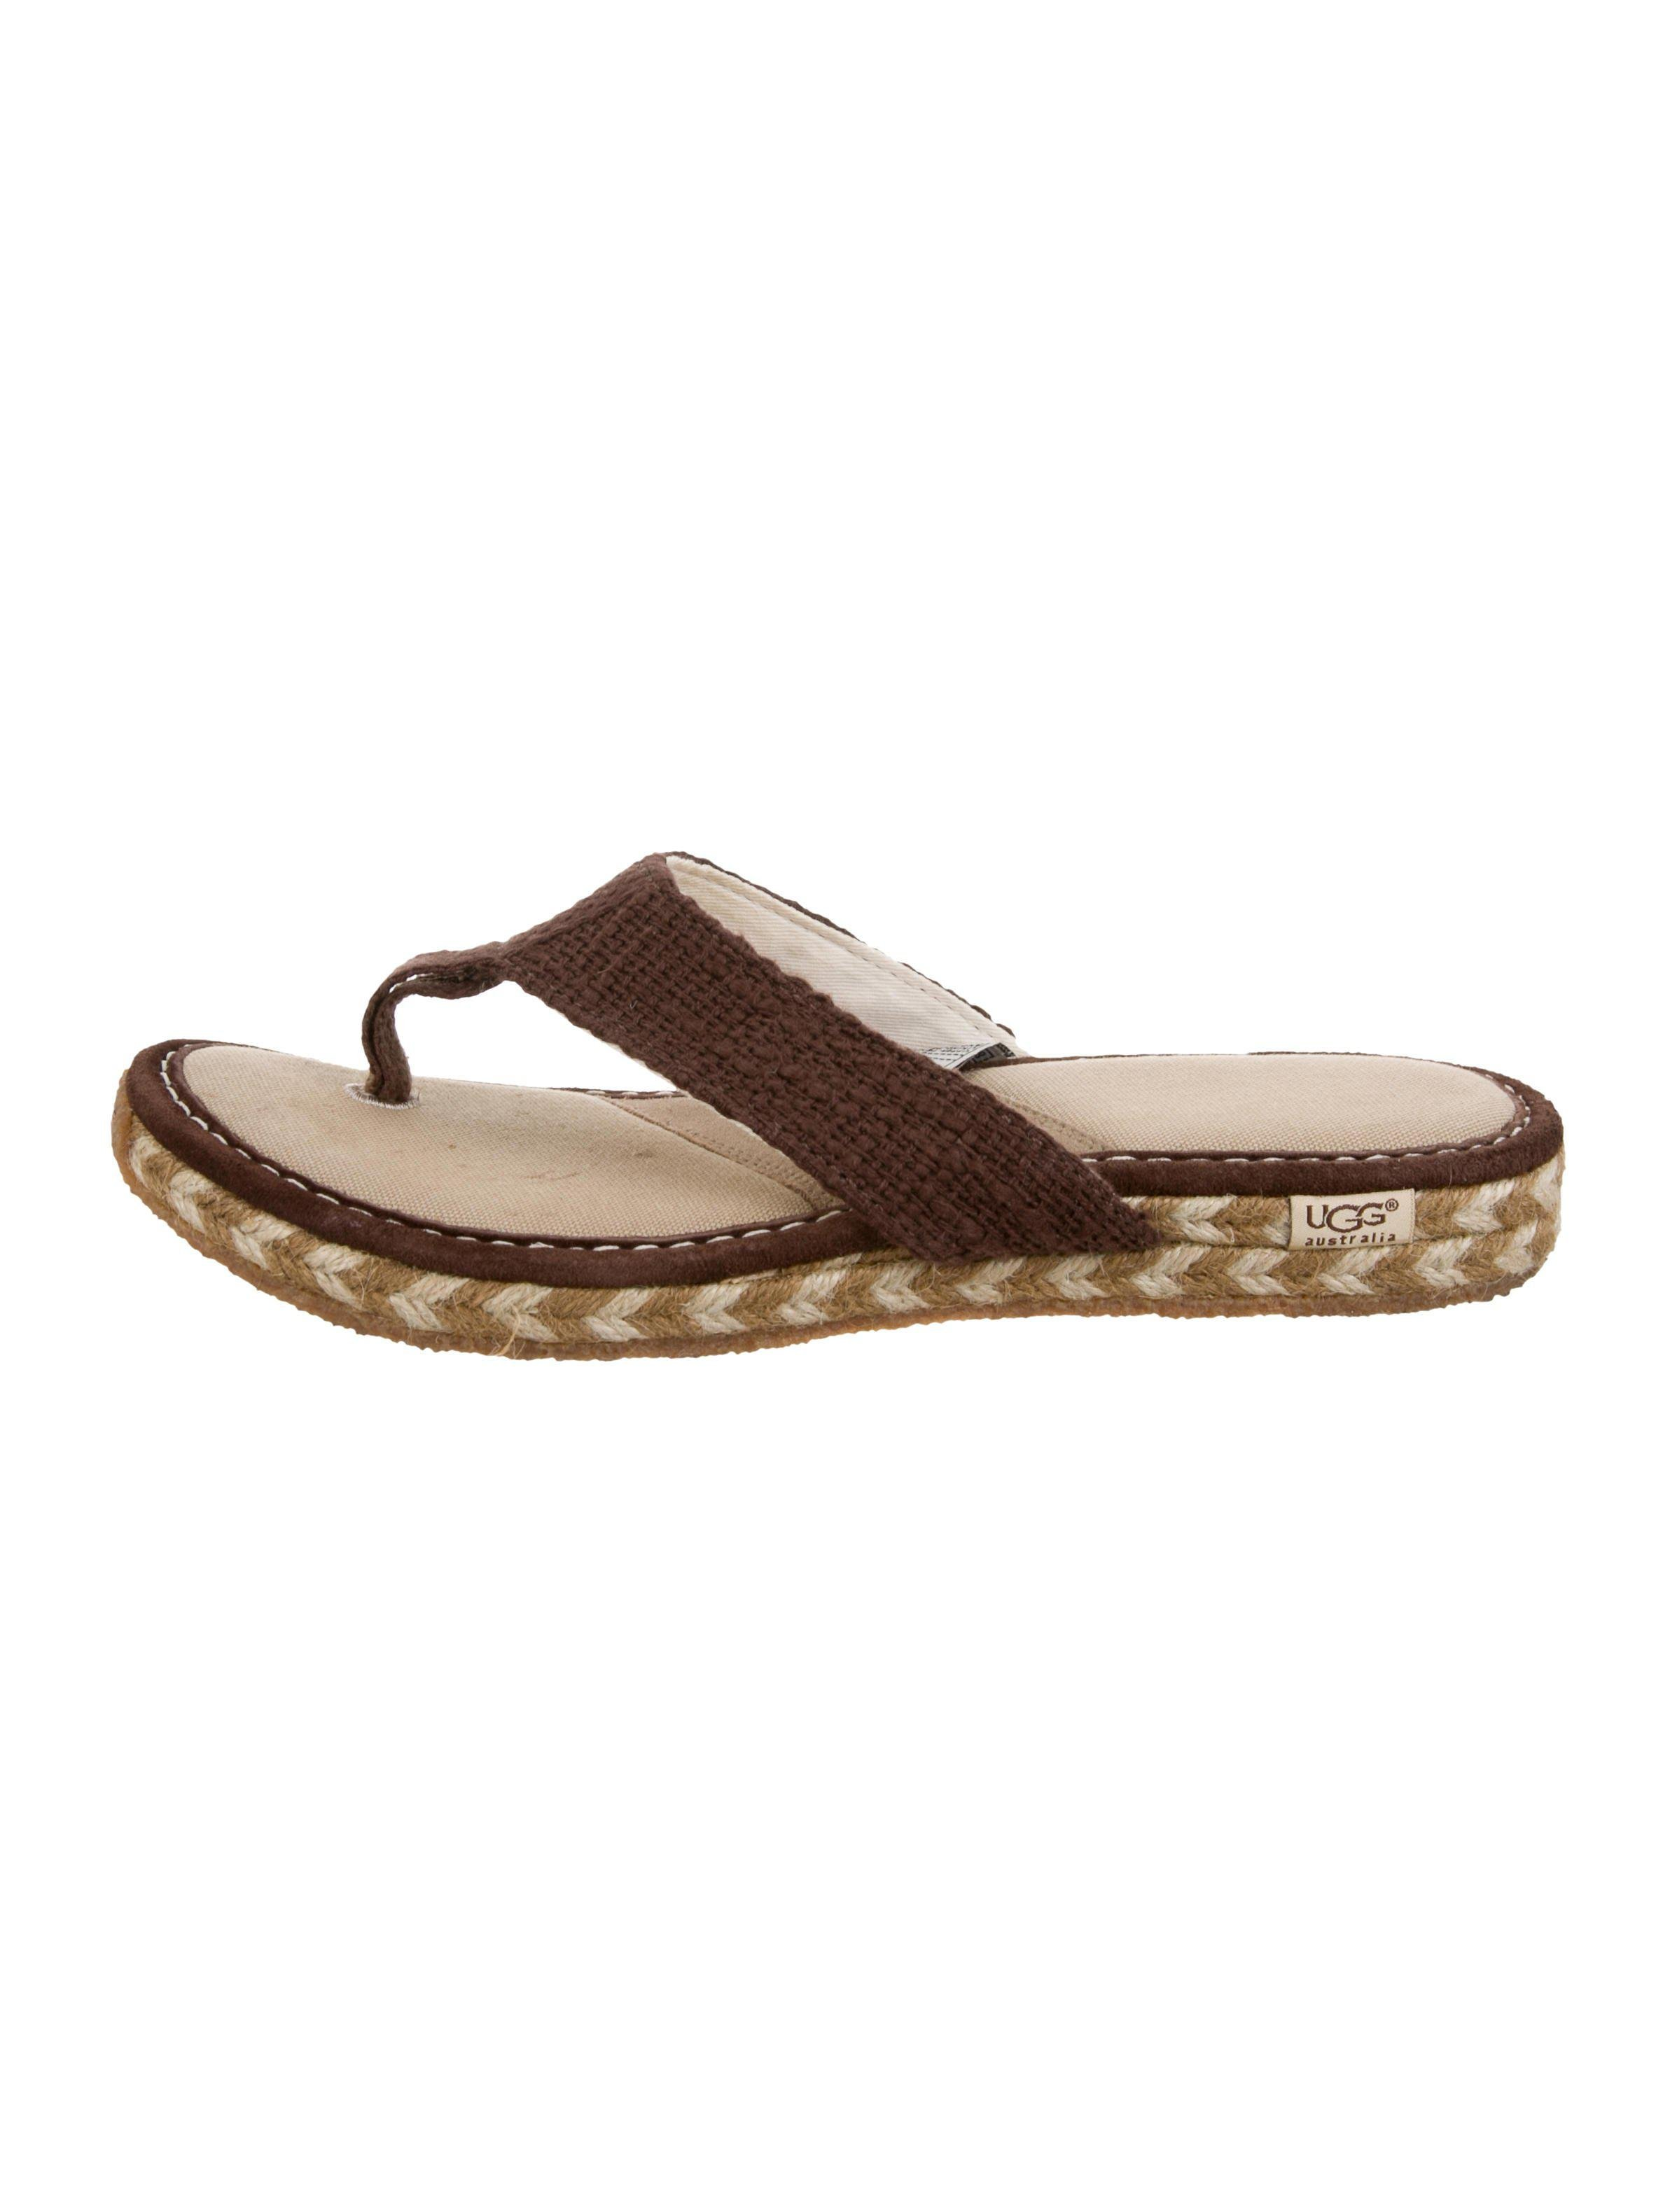 58b3963bb5a Lyst - Ugg Canvas Thong Sandals in Brown